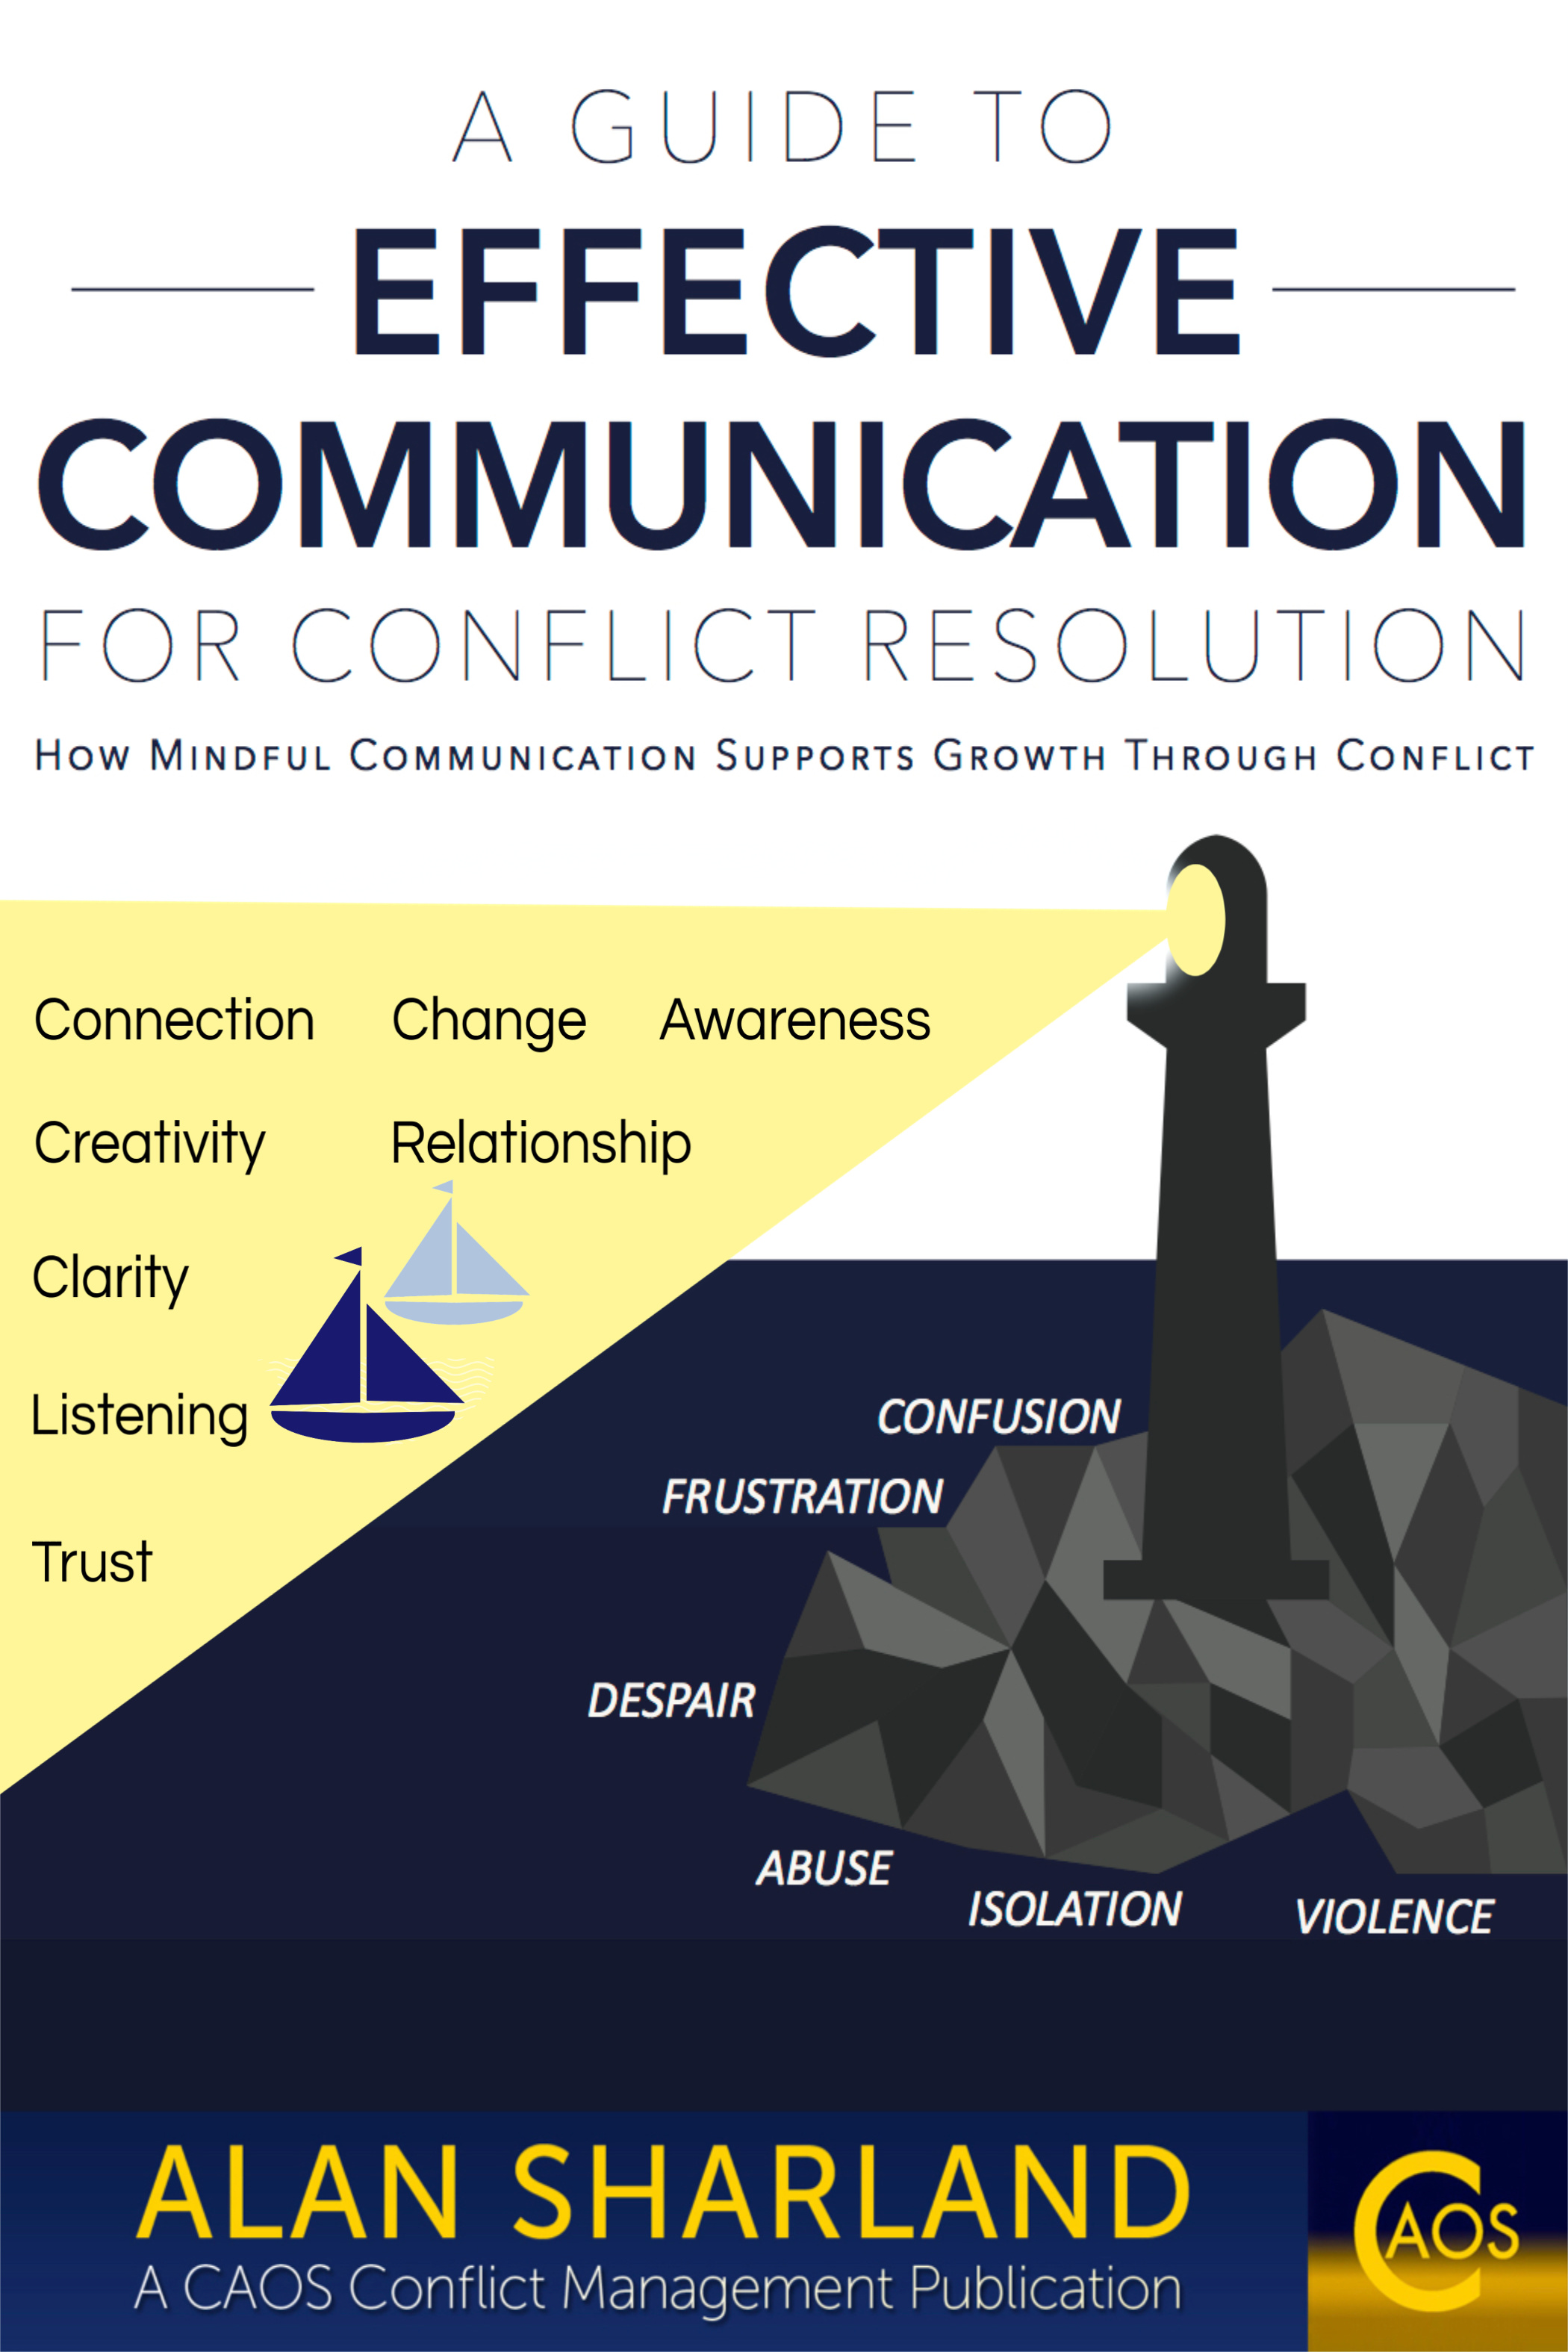 A Guide to Effective Communication for Conflict Resolution - Mindful communication